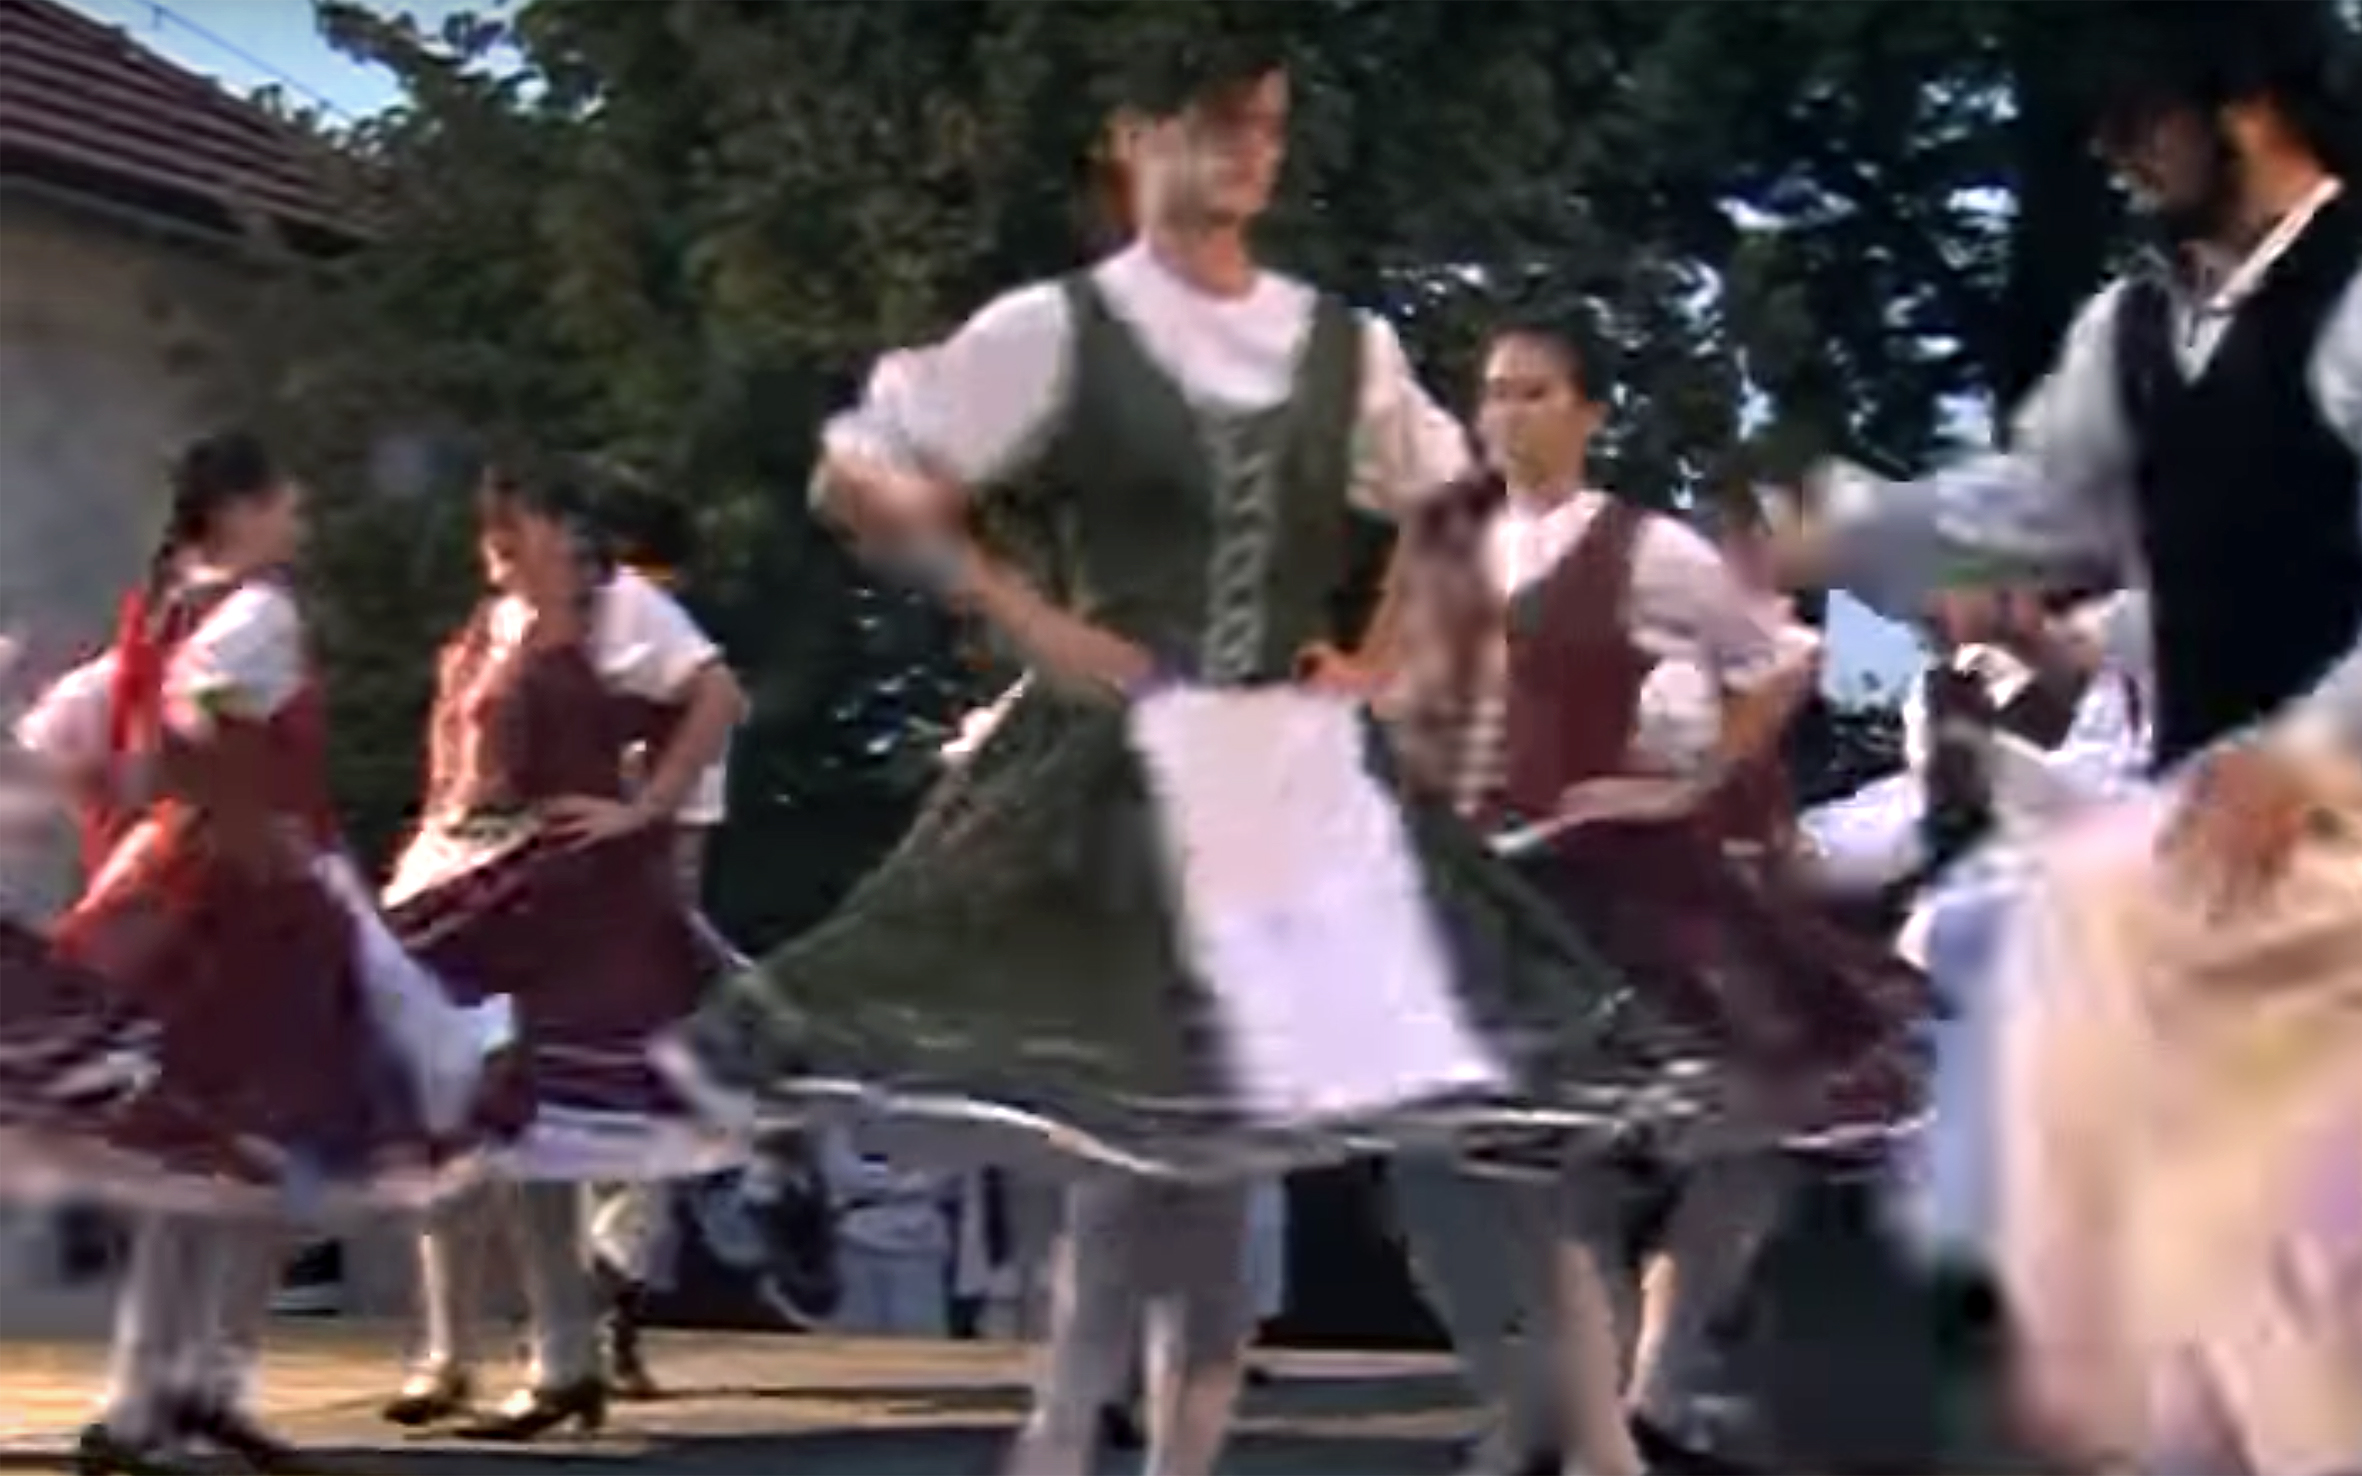 927.Ugrós / Hungary - Ugrós is an athletic Hungarian couples' jumping dance in 2/4 meter with an off-beat accent similar to polkas or hasaposerviko. Its origins lay in weapon dances from the Middle Ages. Dunántúli Ugros is a couples' folk dance from Transdanubia (Dunántúl in Hungarian), the western part of Hungary.